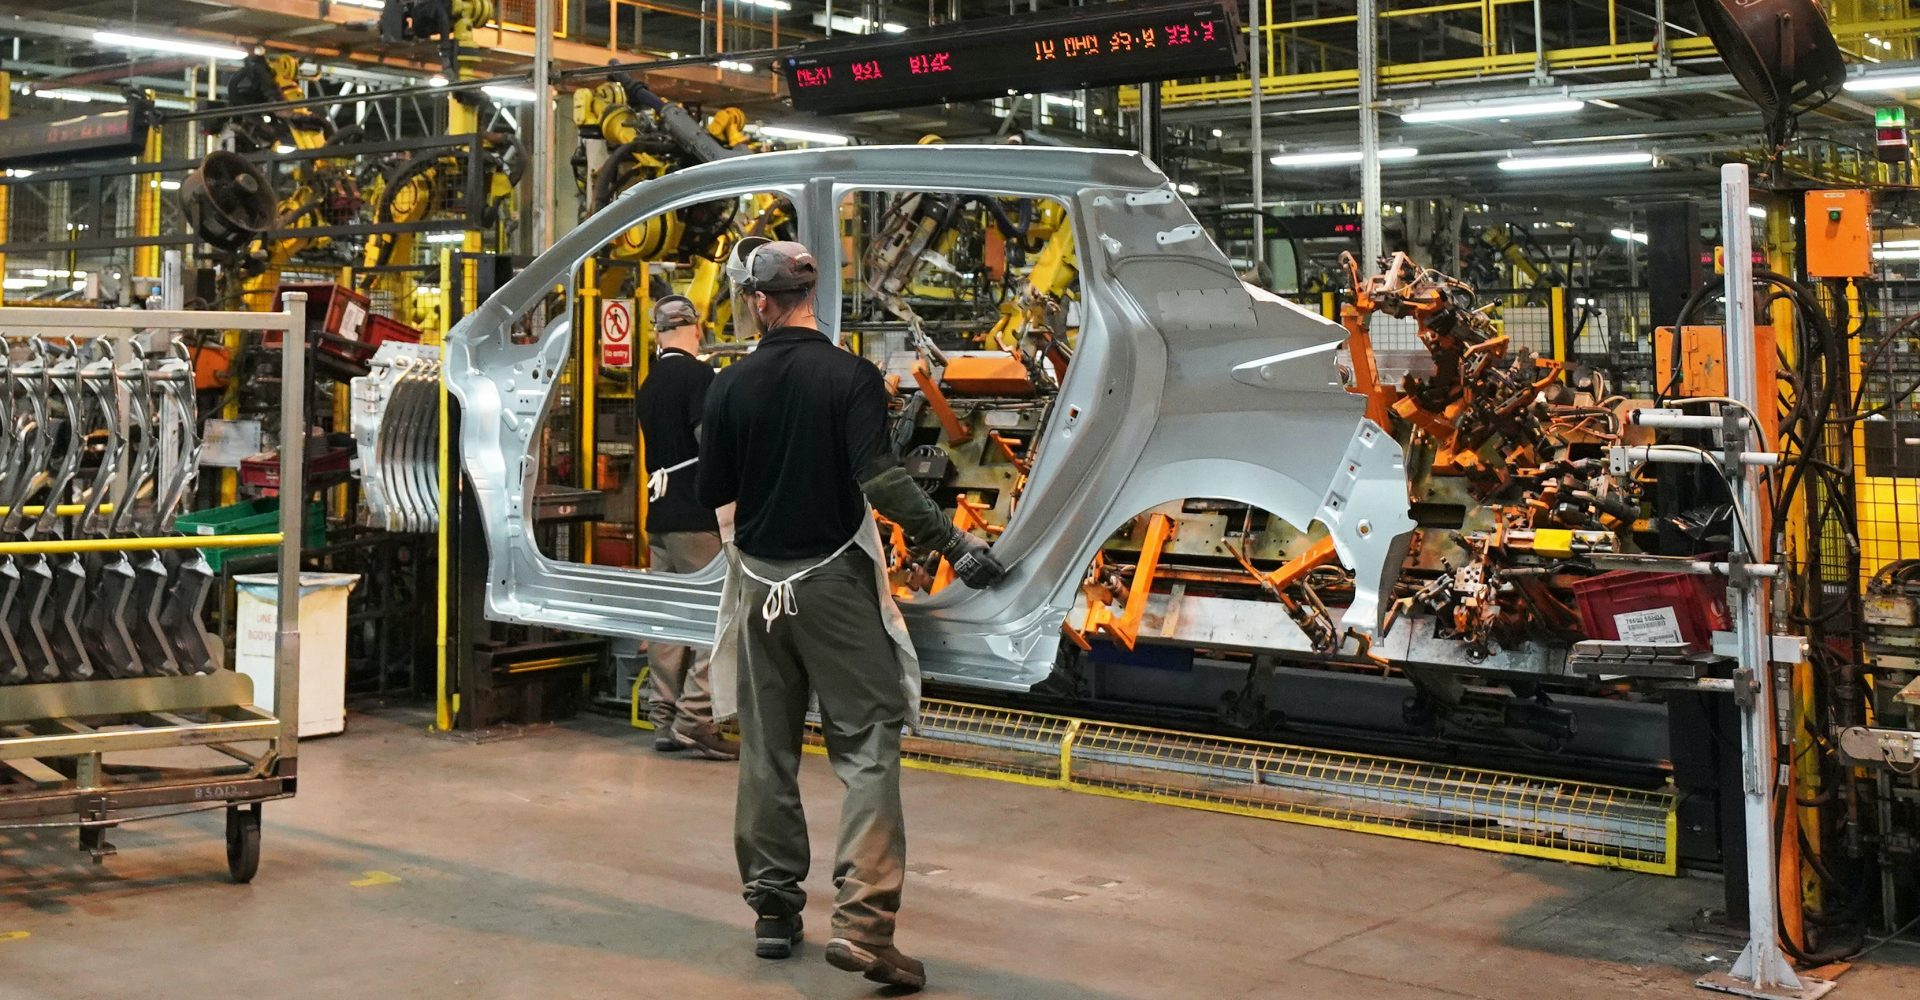 Just 197 cars were produced in the UK in April